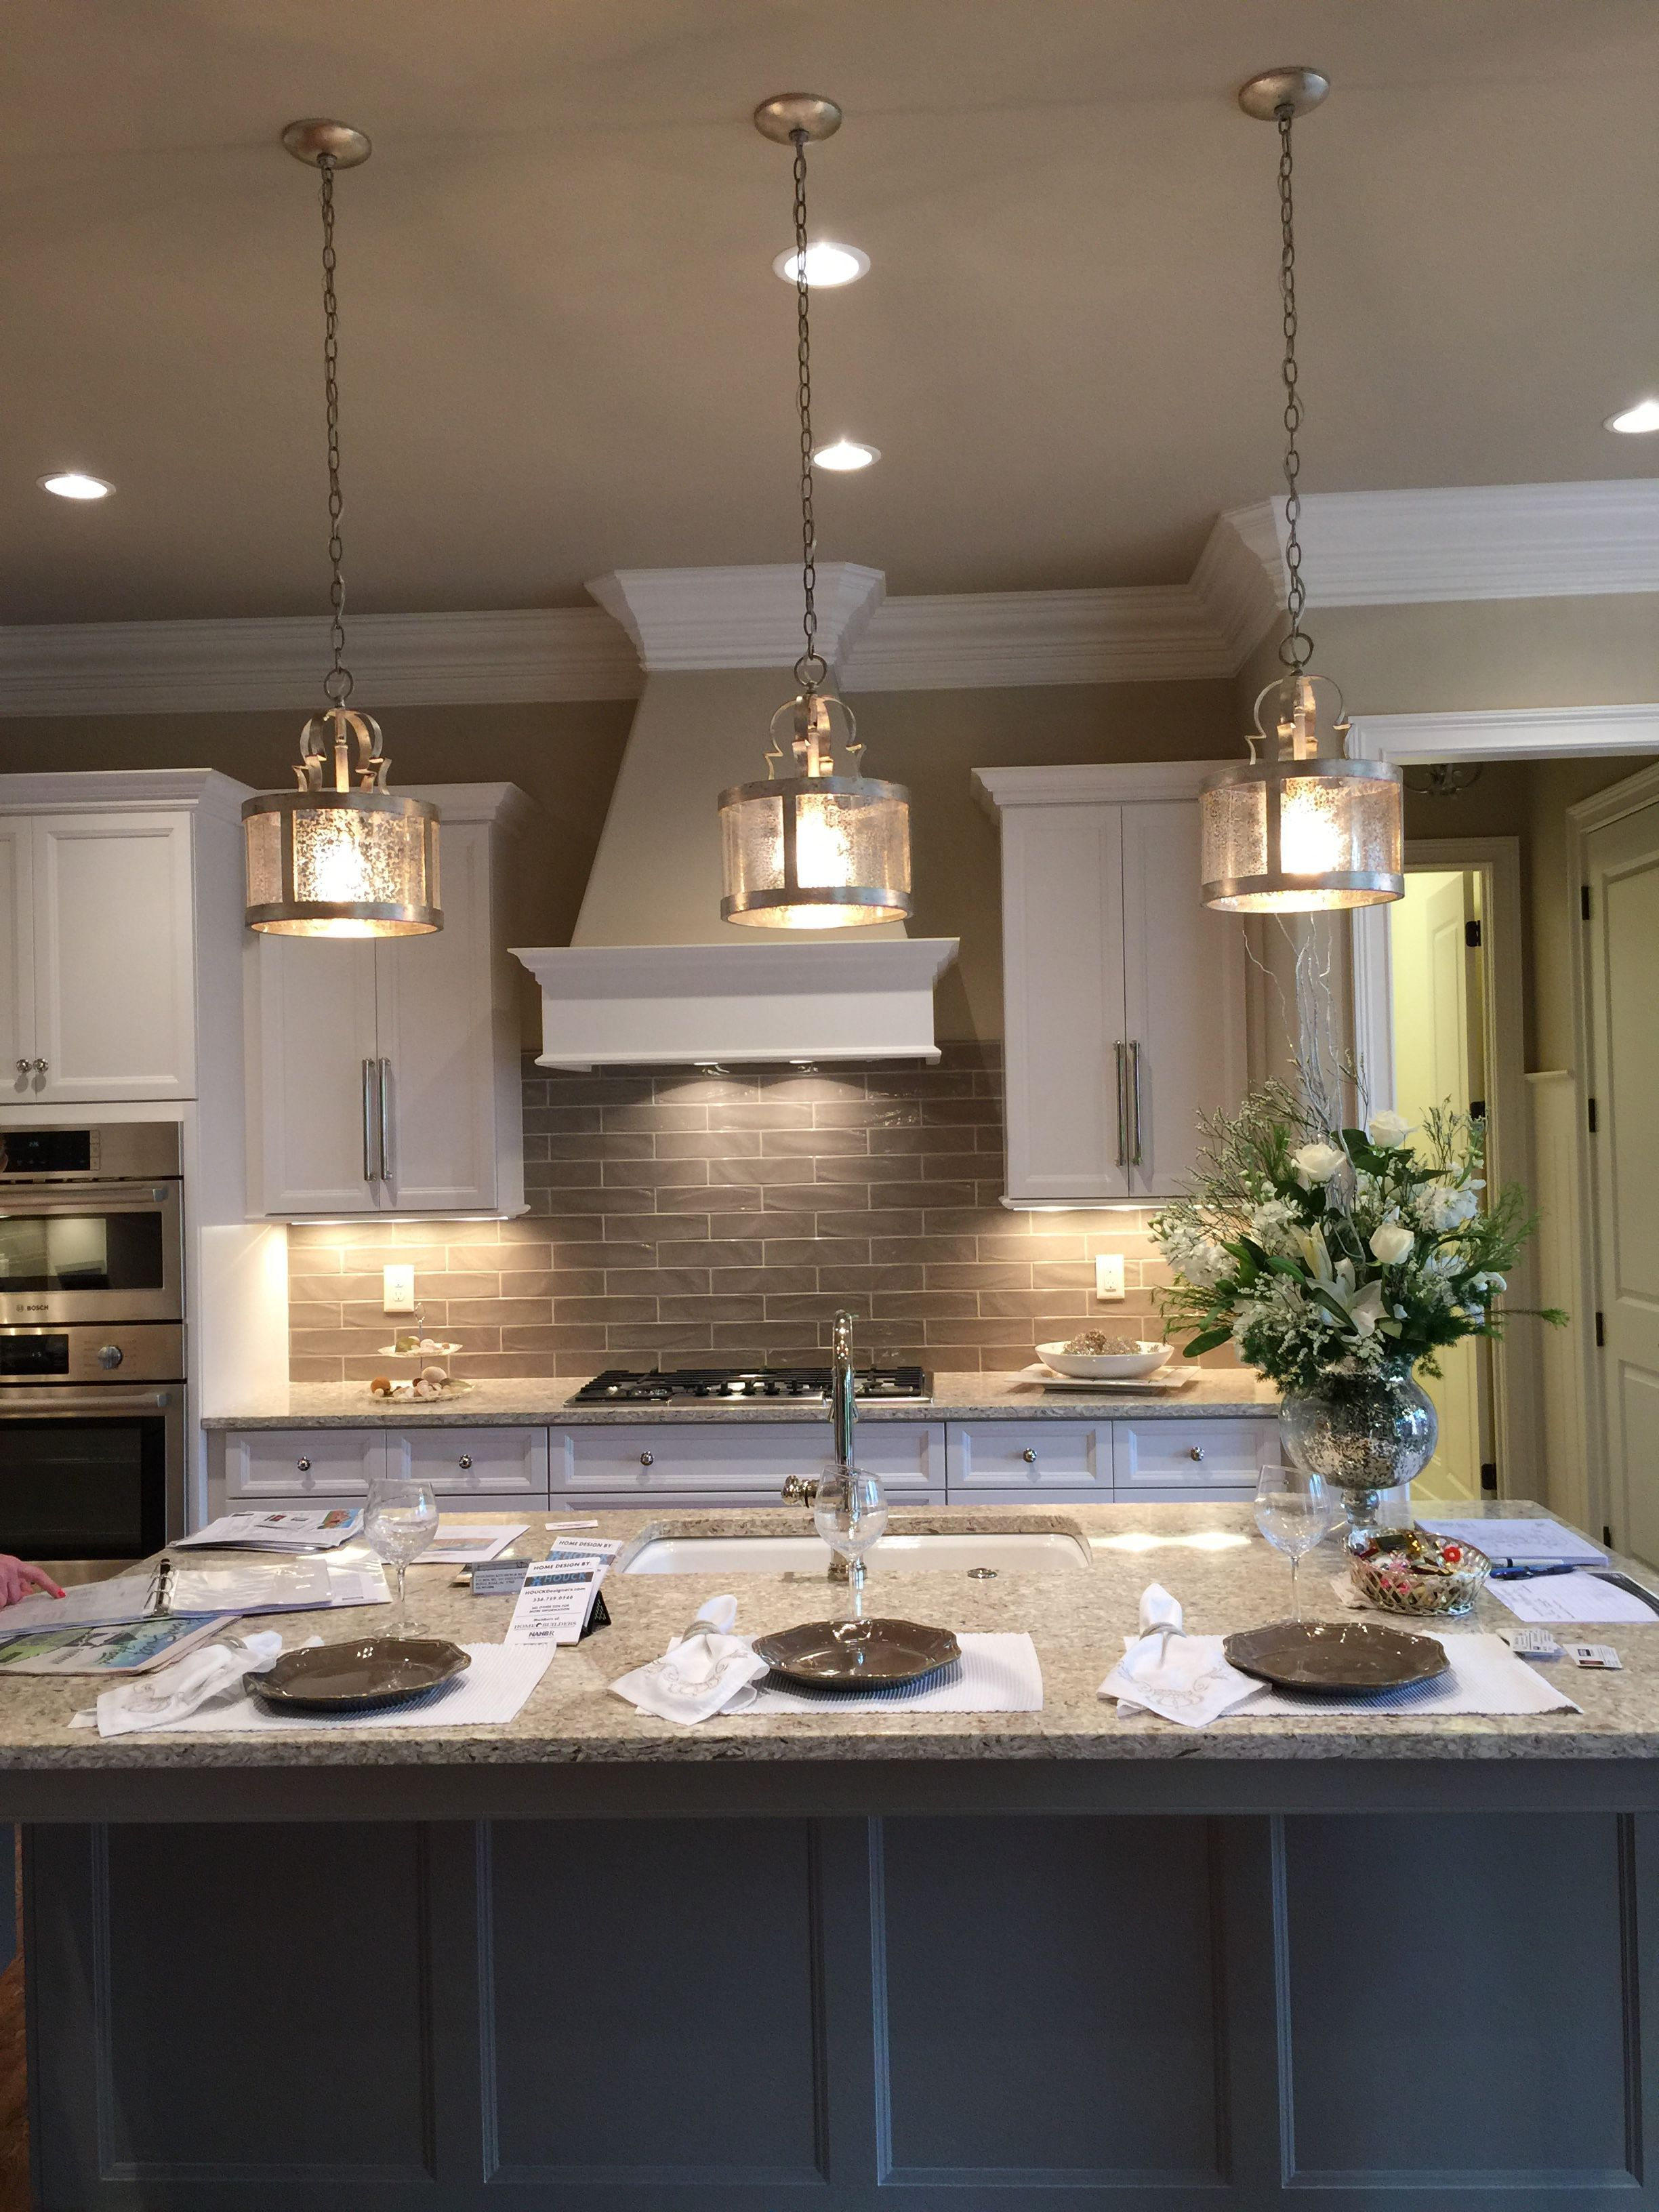 Pin by Cathy Stevens on kitchen designs Kitchen island